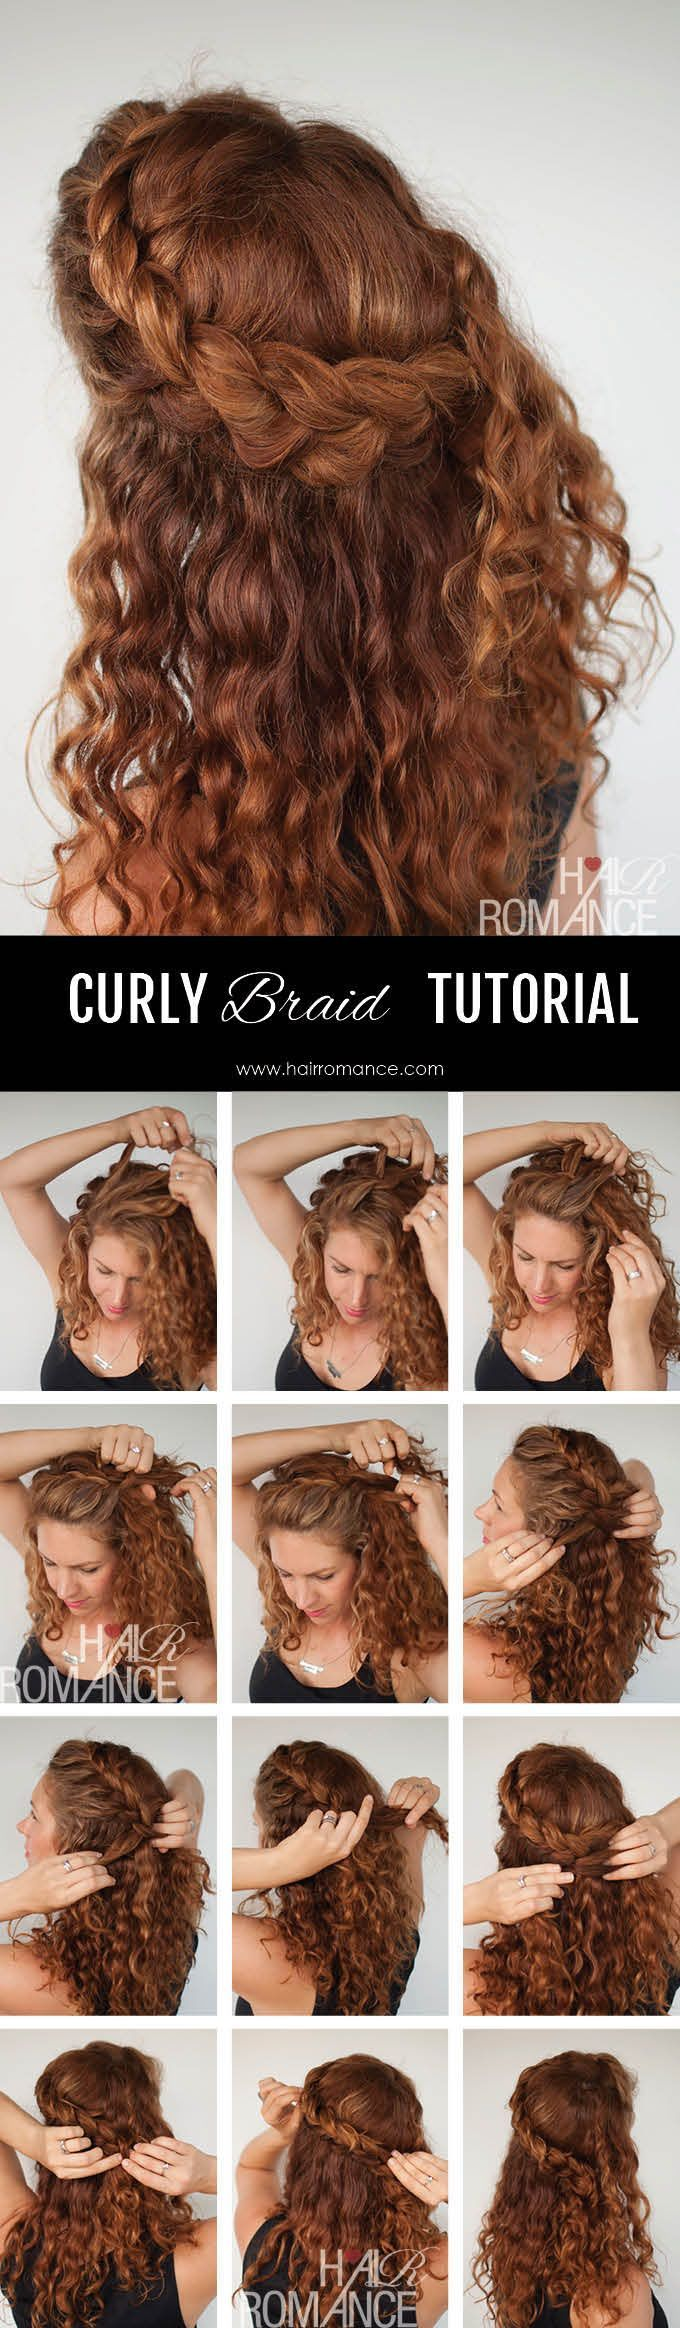 Curly hairstyles tutorials - Curly Hair Tutorial The Half Up Braid Hairstyle